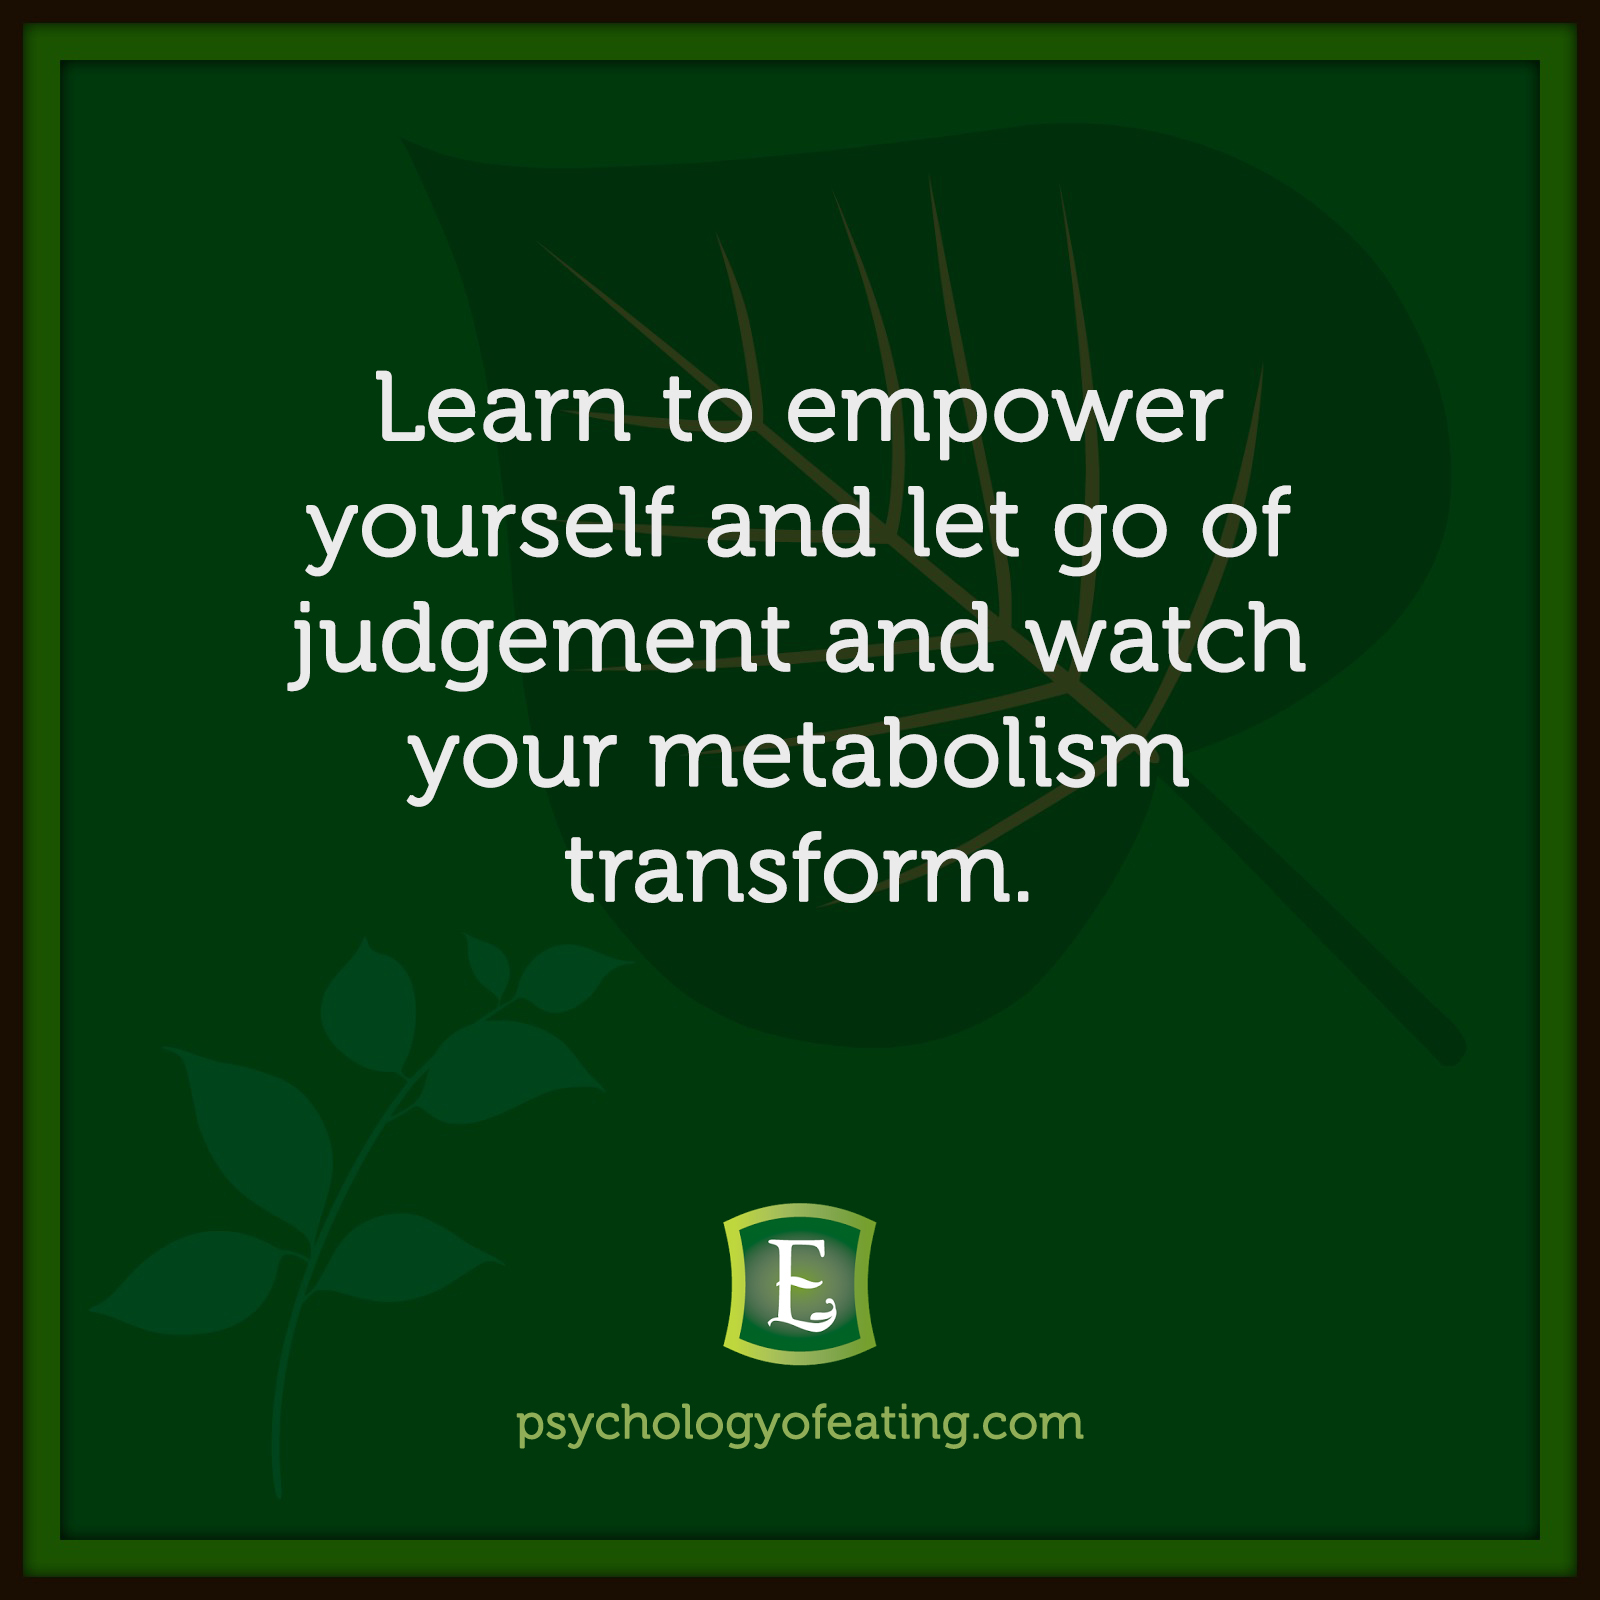 Learn to empower yourself and let go of judgement and watch your metabolism transform. #health #nutrition #eatingpsychology #IPE